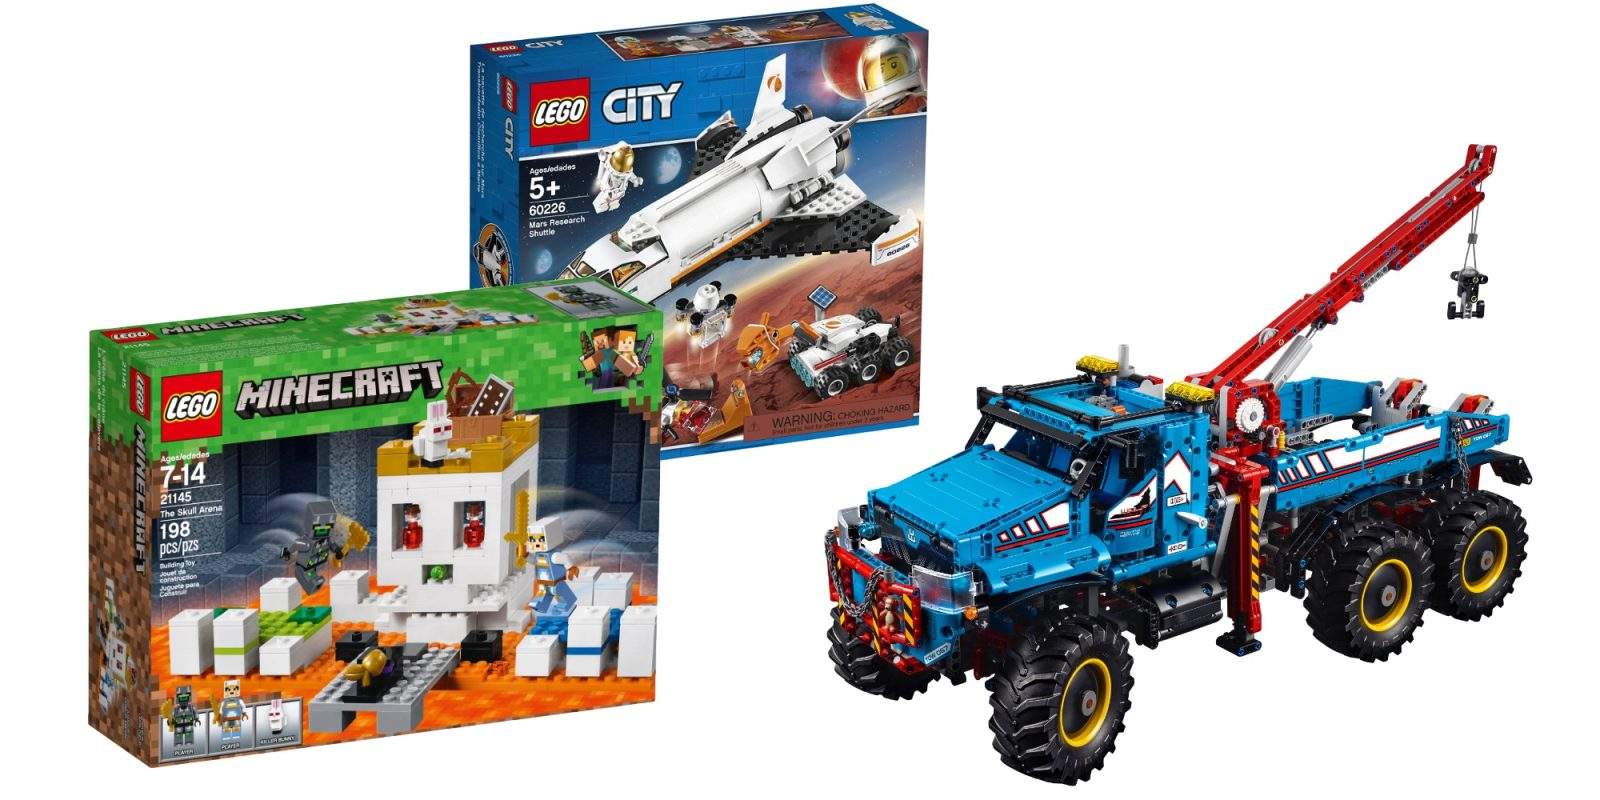 LEGO Technic All Terrain Tow Truck drops to $170 (Save $120), more from $3